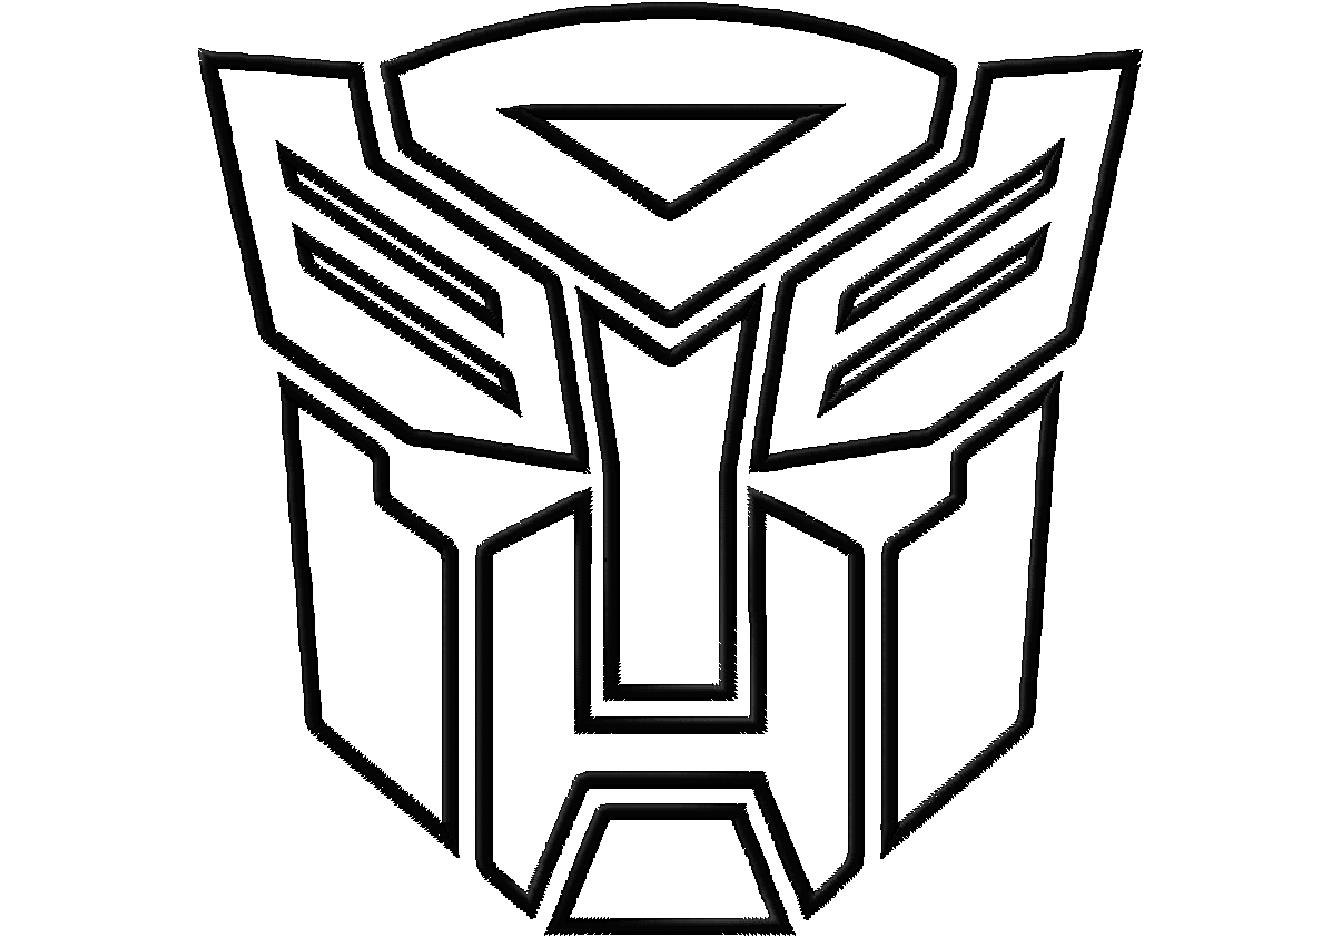 Transformers symbol coloring pages to print ~ Sewing and Stenciling for Boys - Scattered Thoughts of a ...